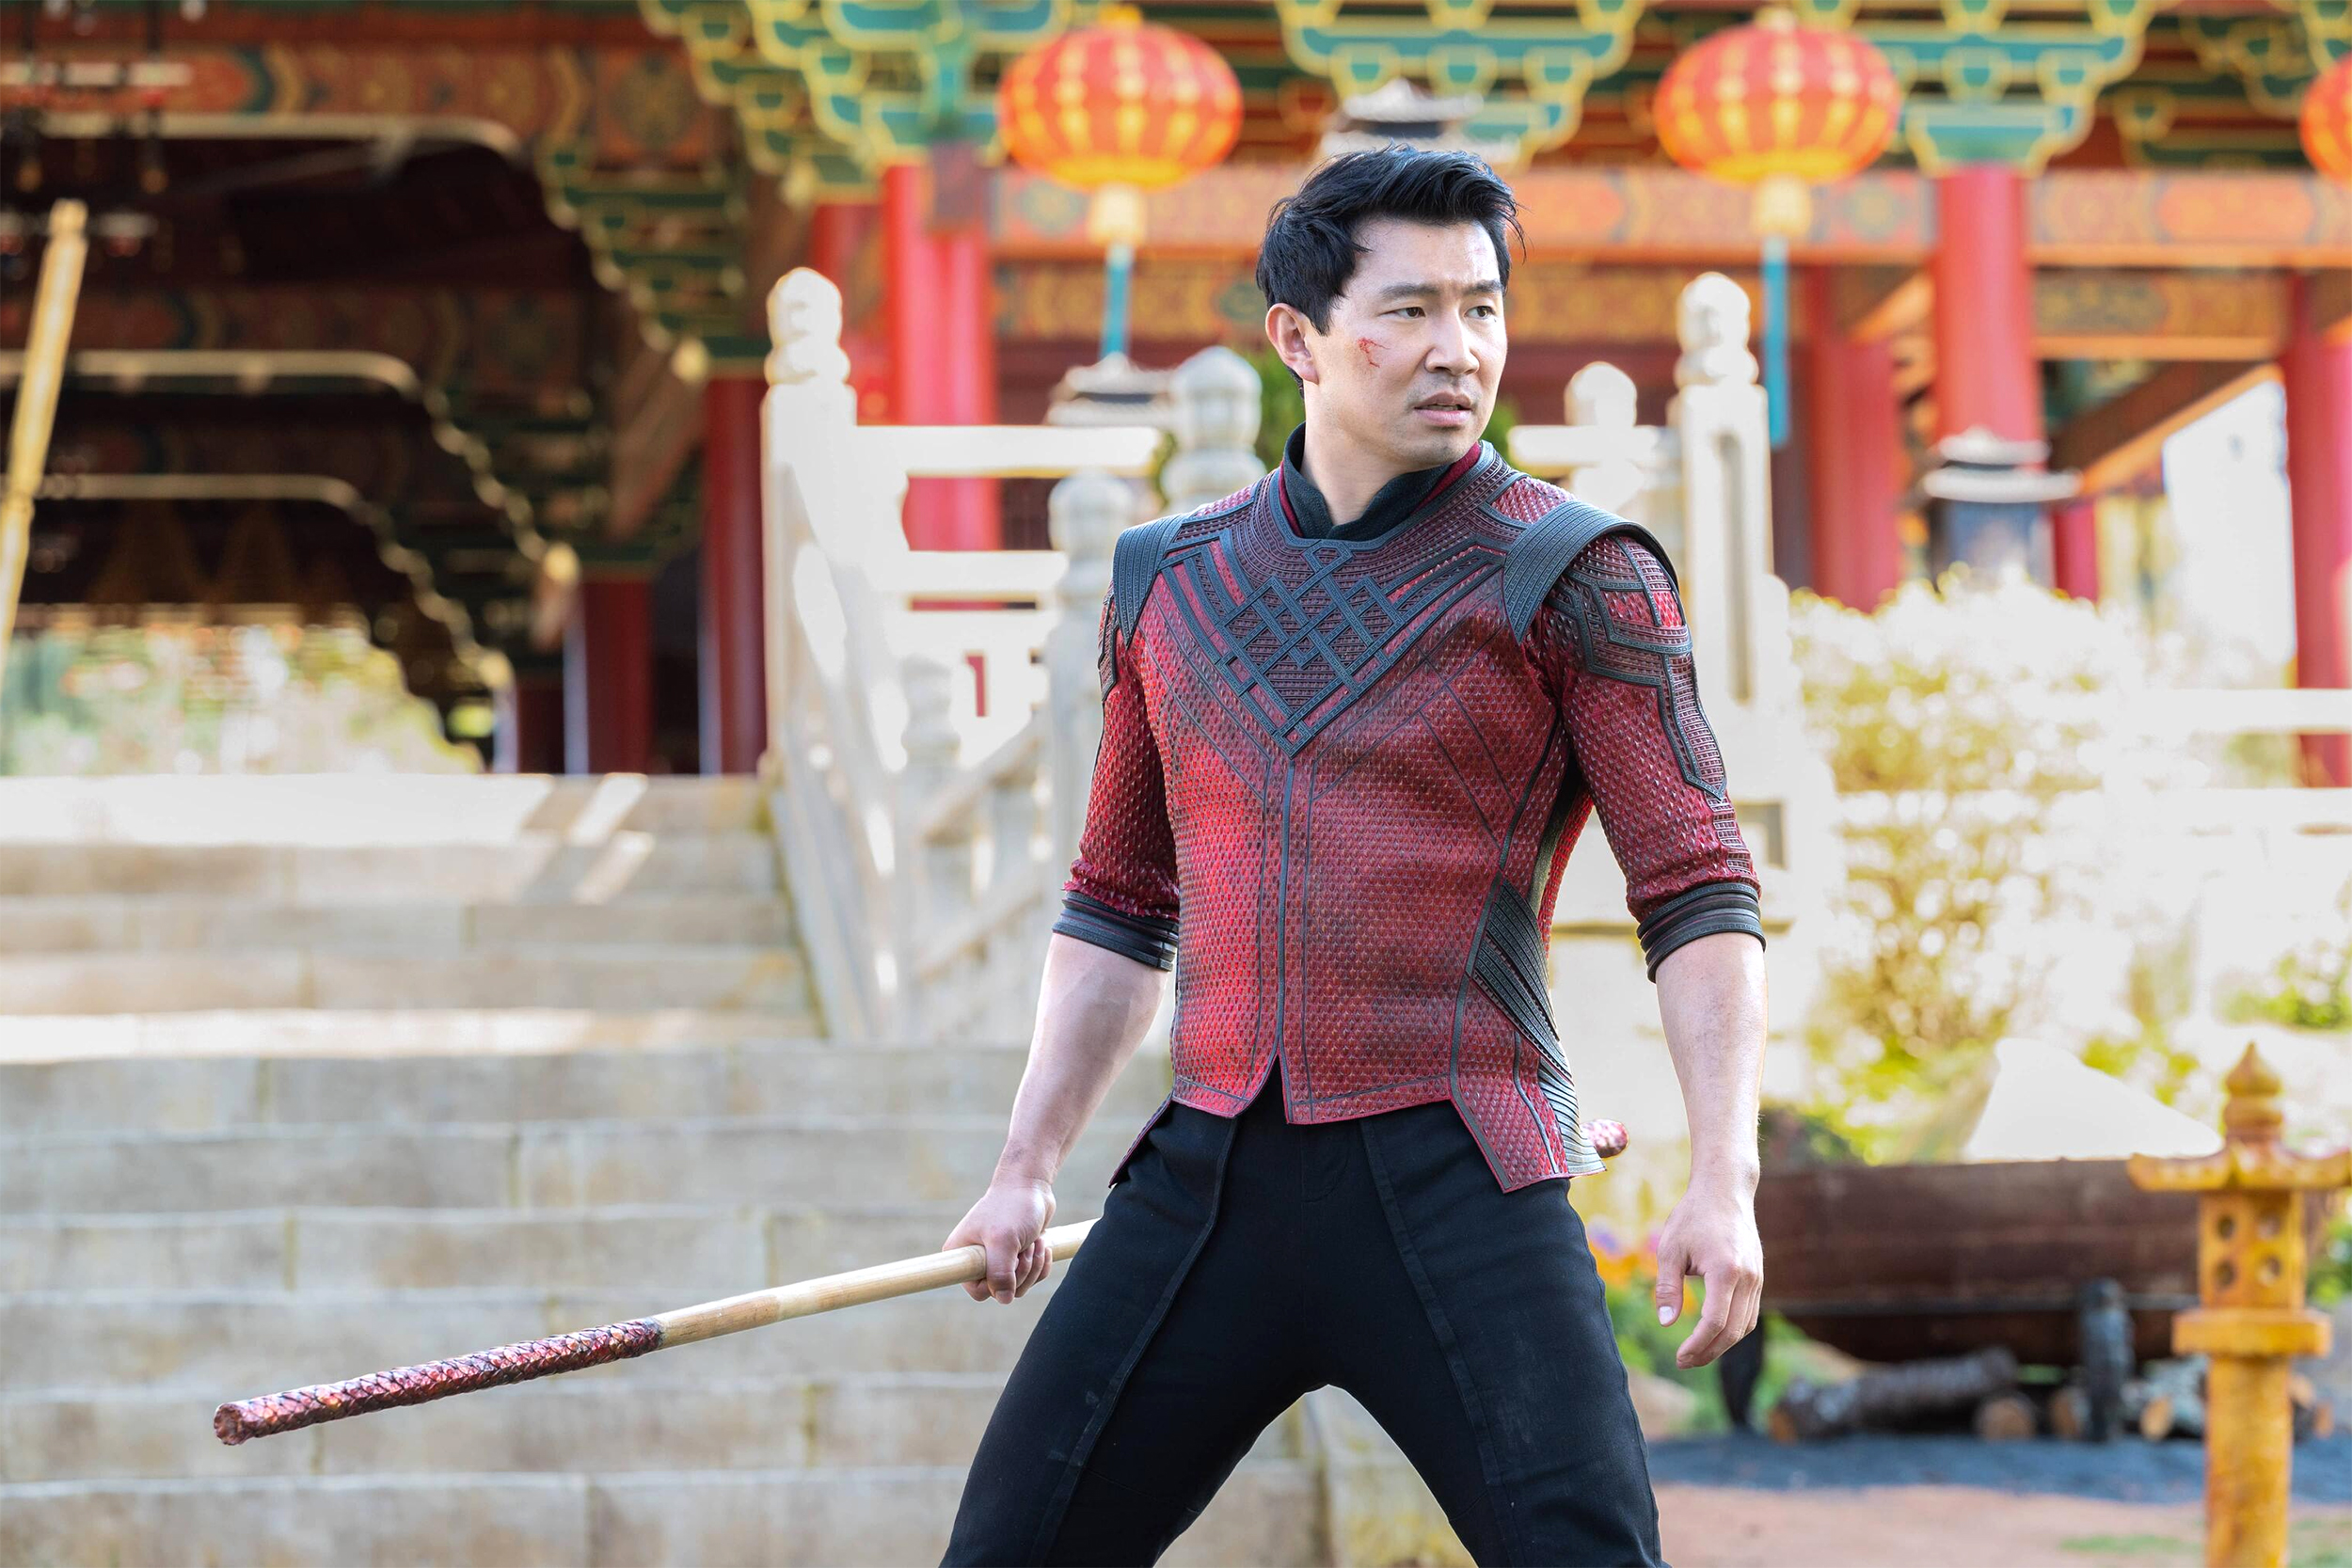 'Shang-Chi' is a historic first for the Marvel franchise. It's also awesome.